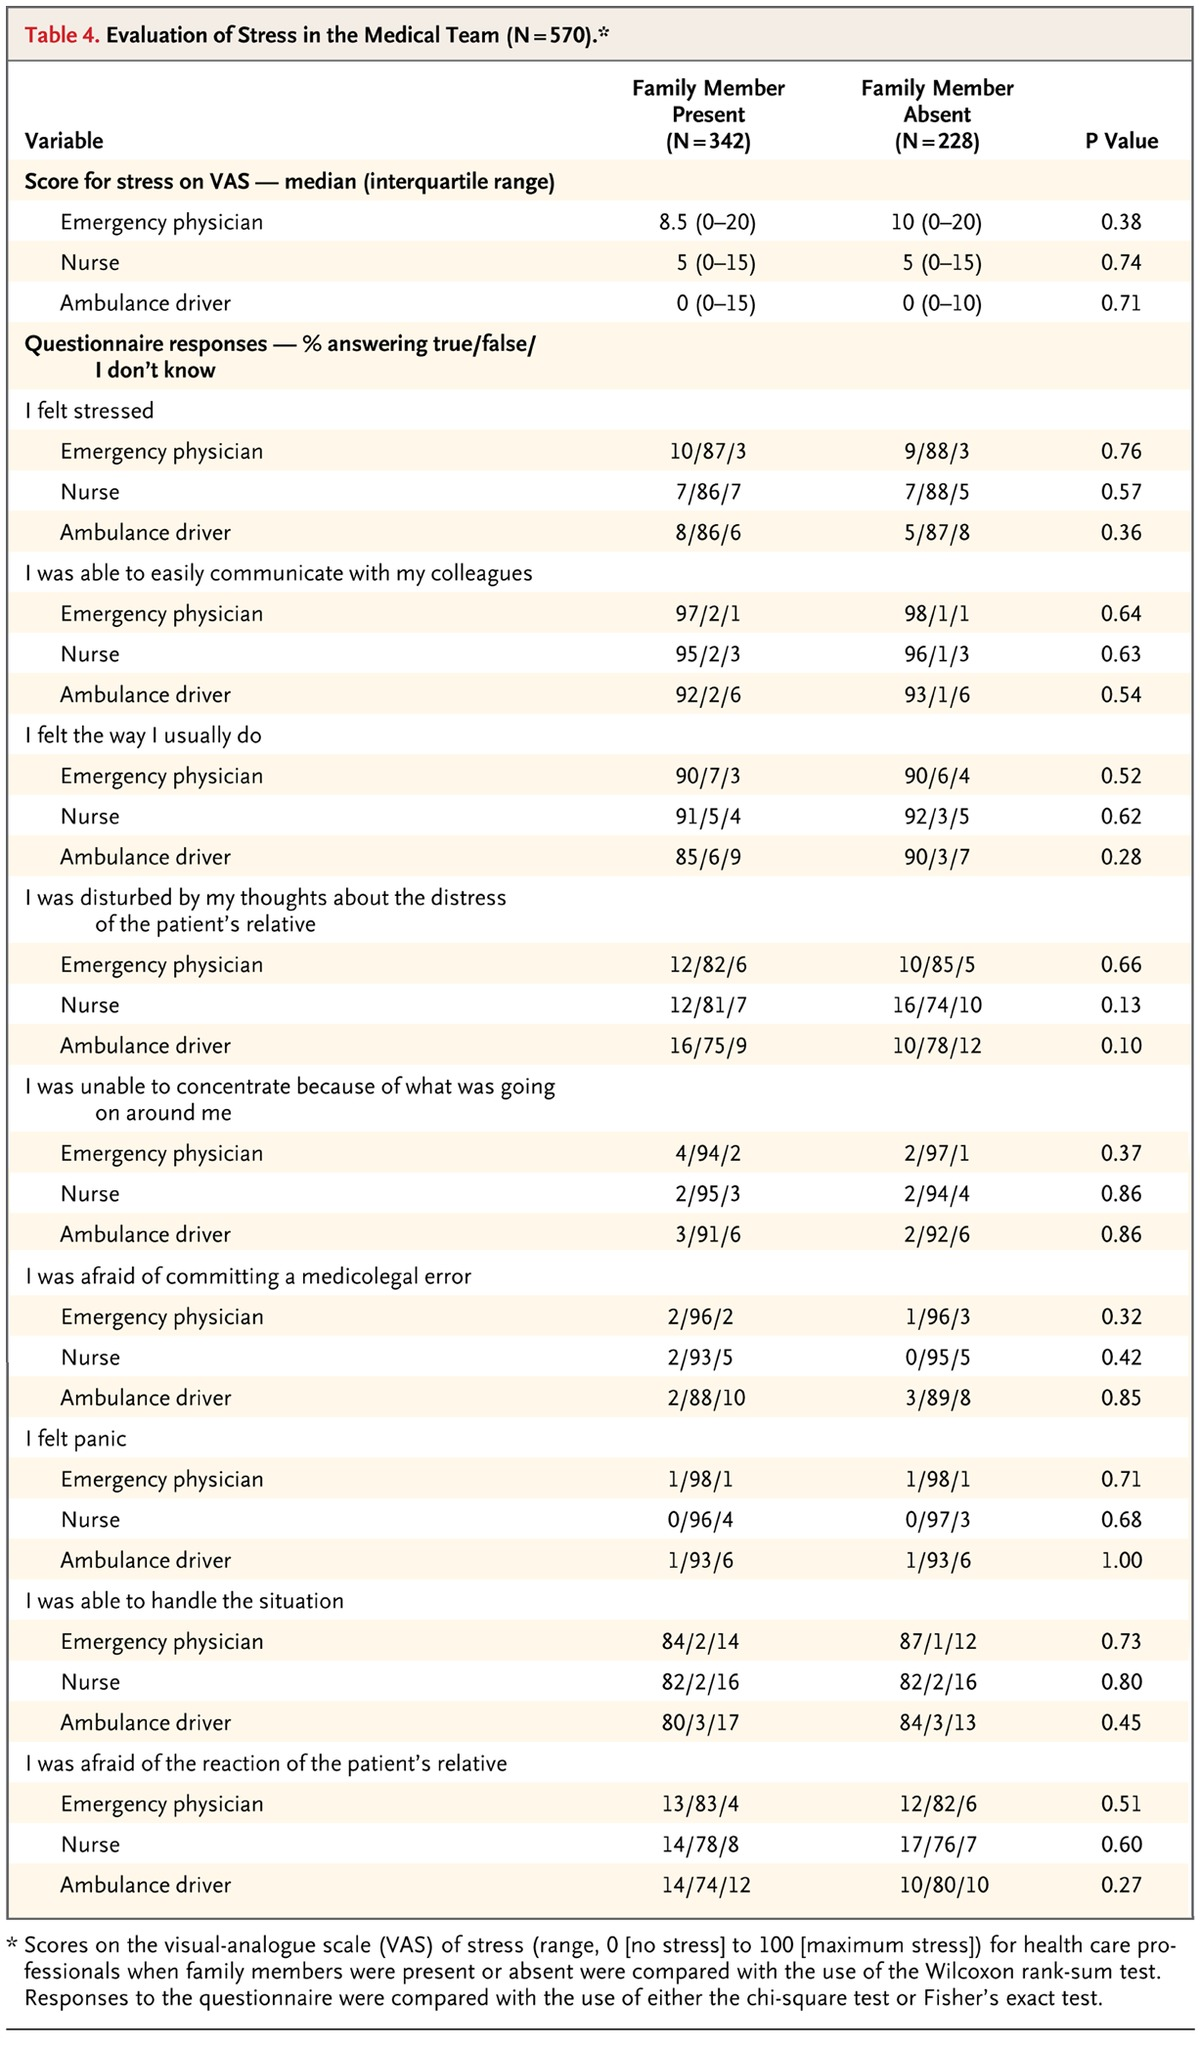 Family presence during cardiopulmonary resuscitation nejm table 4 evaluation of stress in the medical team n570 xflitez Gallery